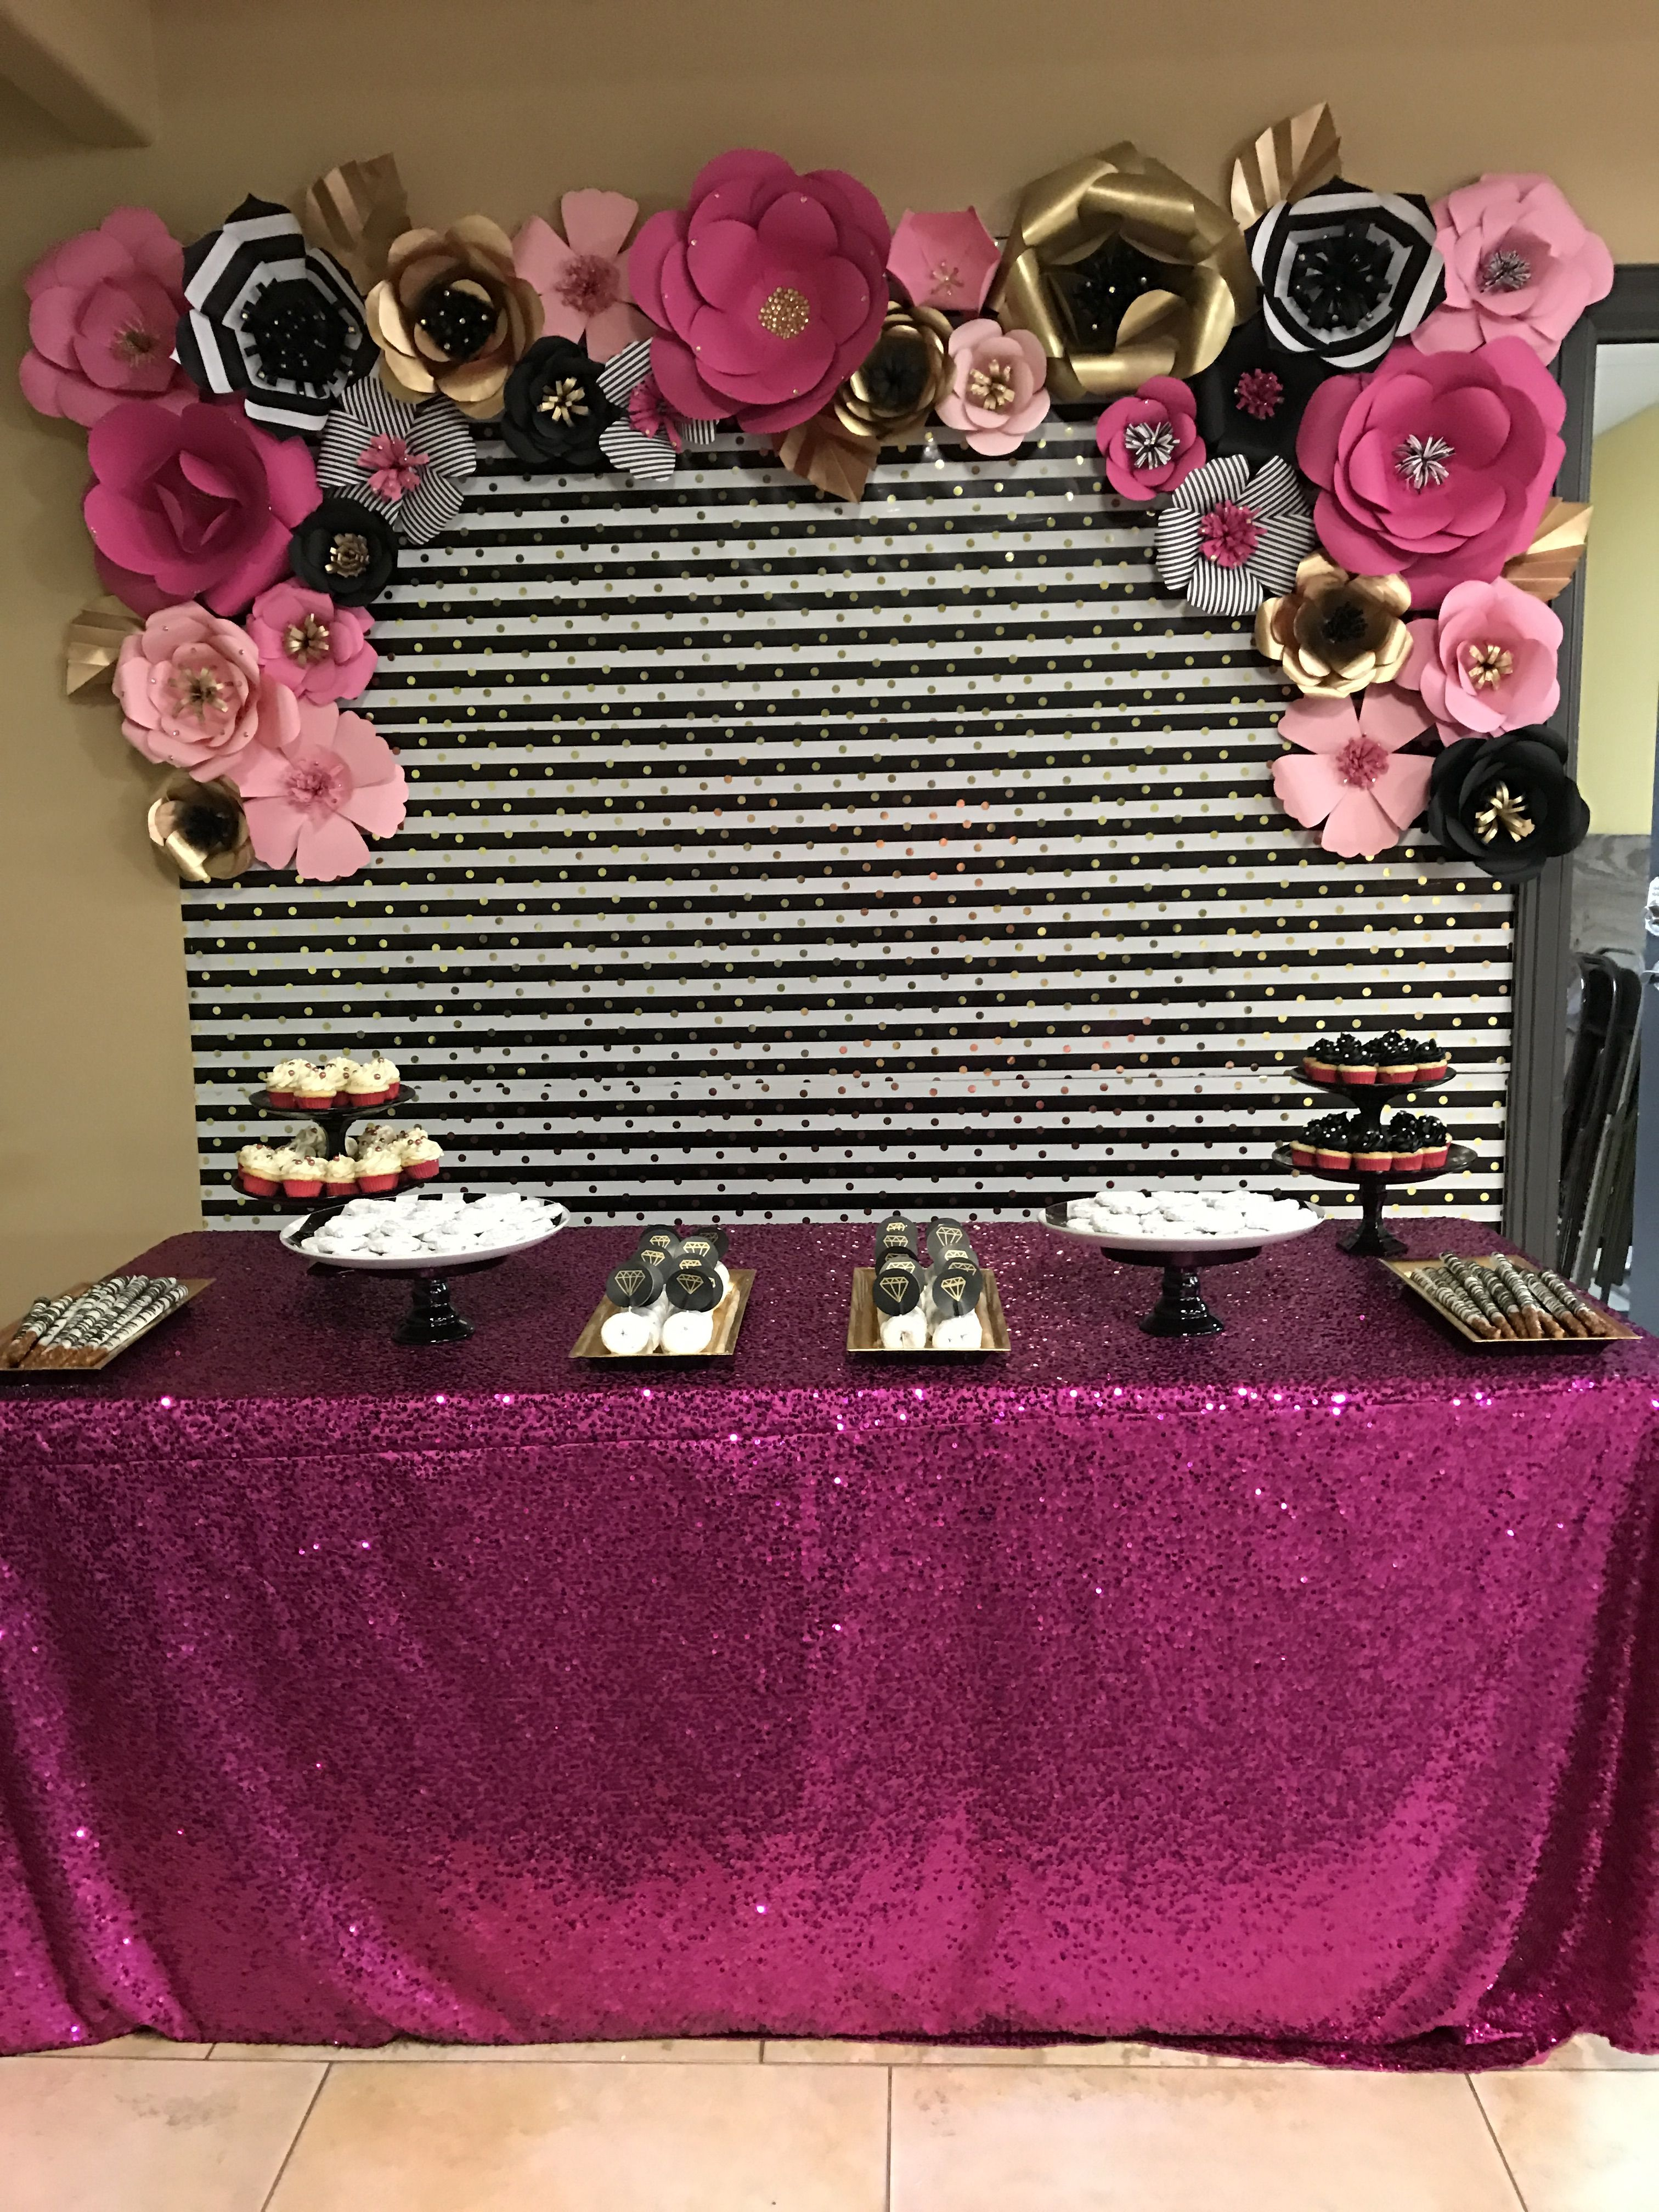 Kate Spade Wedding Ideas DIY | ideas para fiestas mujer | Pinterest ...